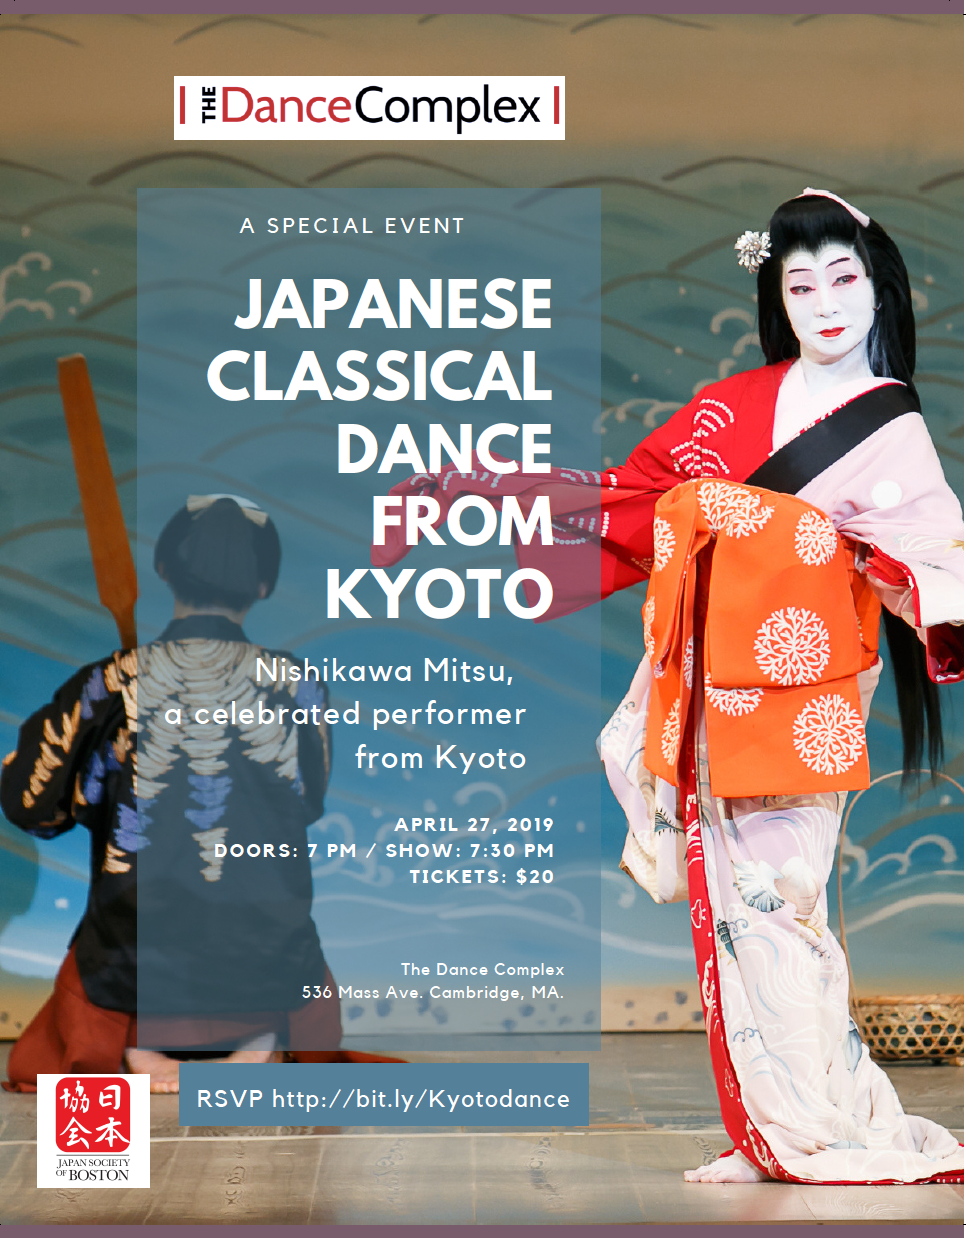 Japanese Classical Dance from Kyoto, Japan | The Dance Complex